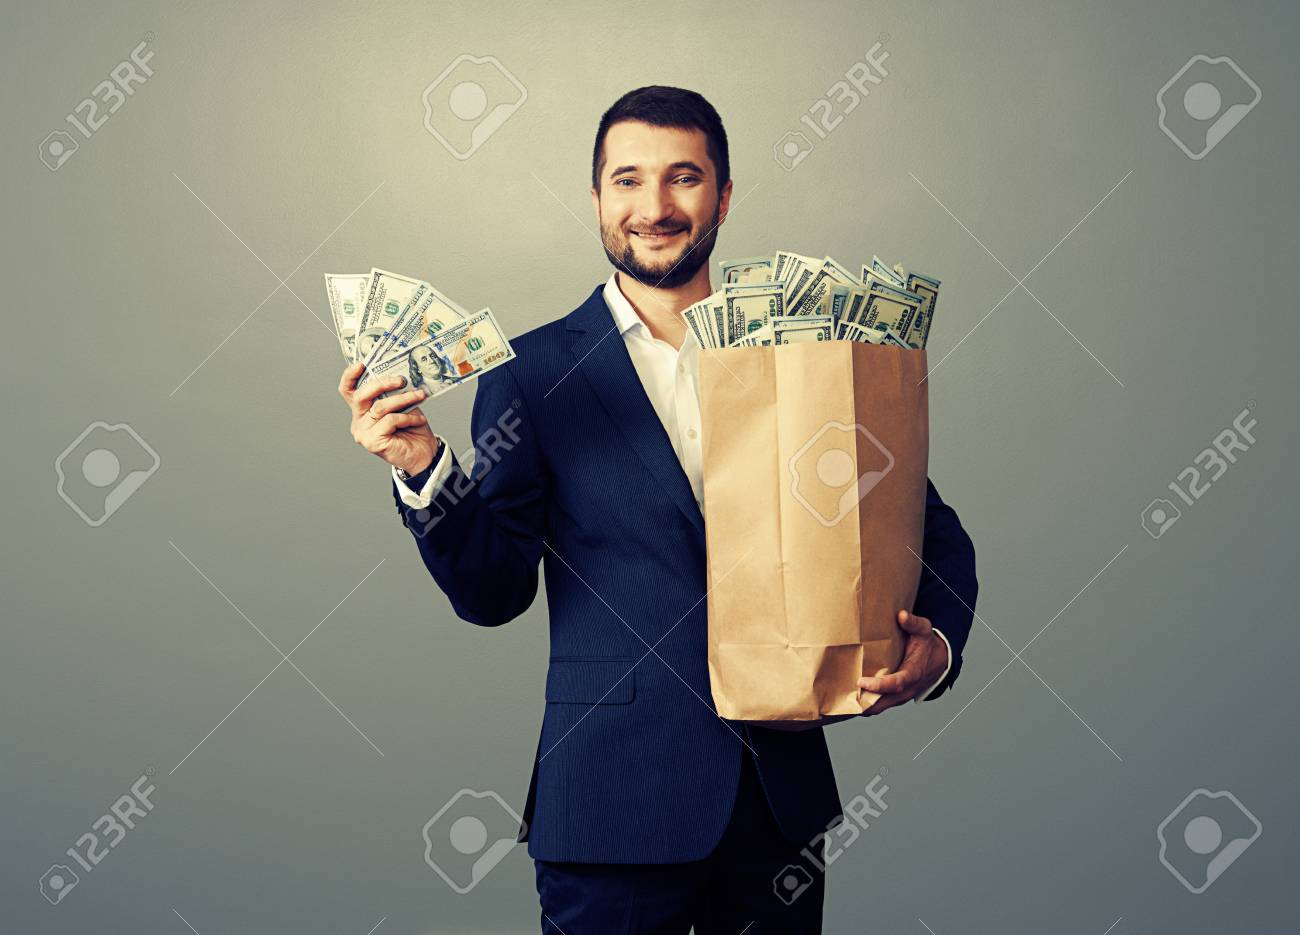 successful businessman holding paper bag with money and smiling. studio photo over grey background Stock Photo - 29619629